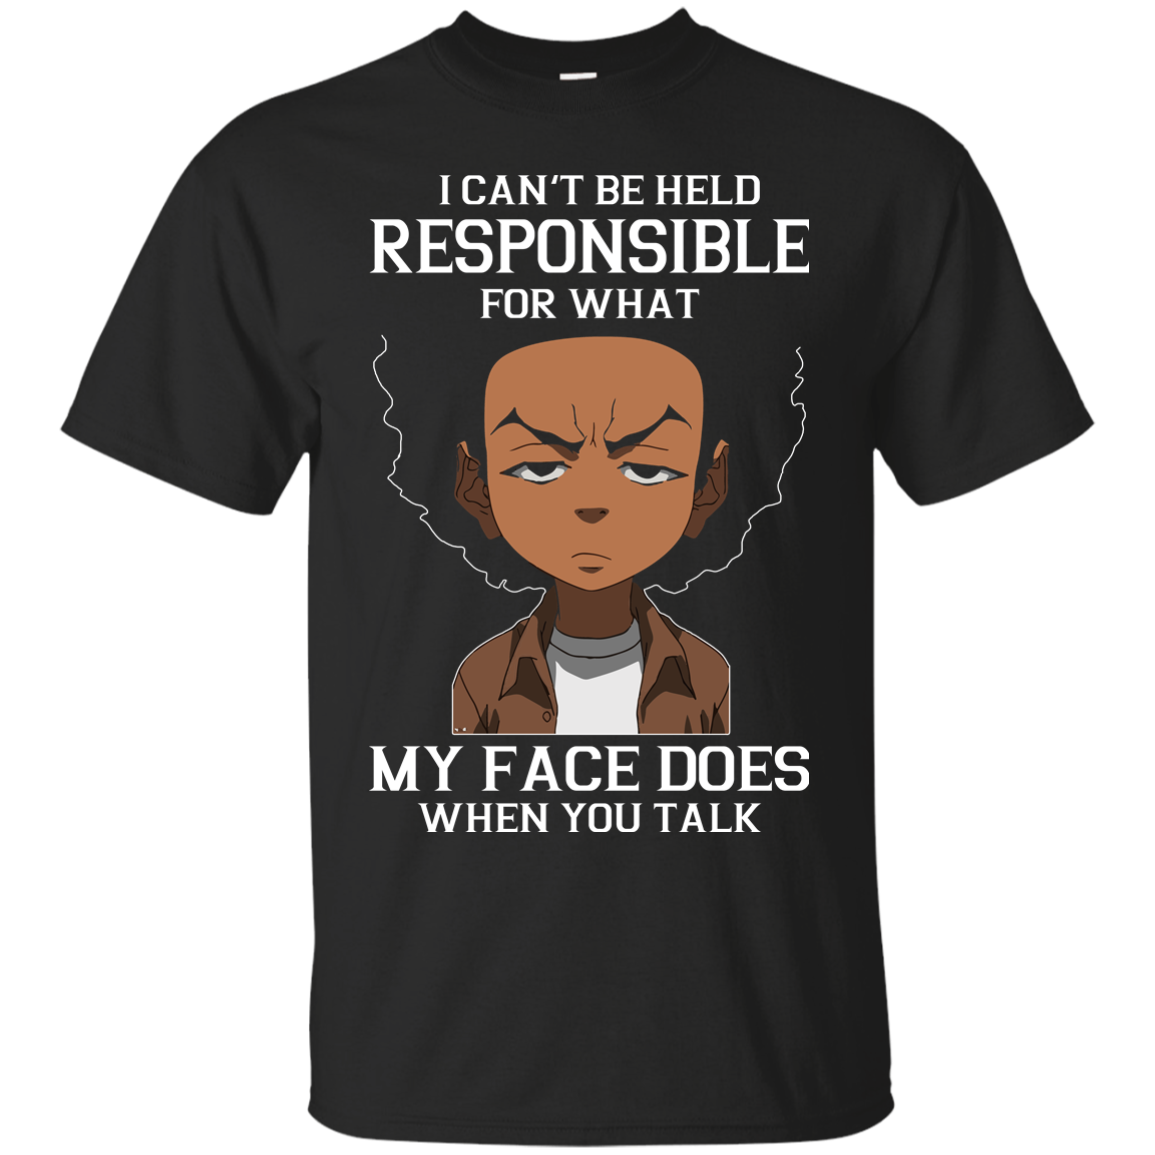 Boondocks: I can't be held responsible for what my face does when you talk shirt